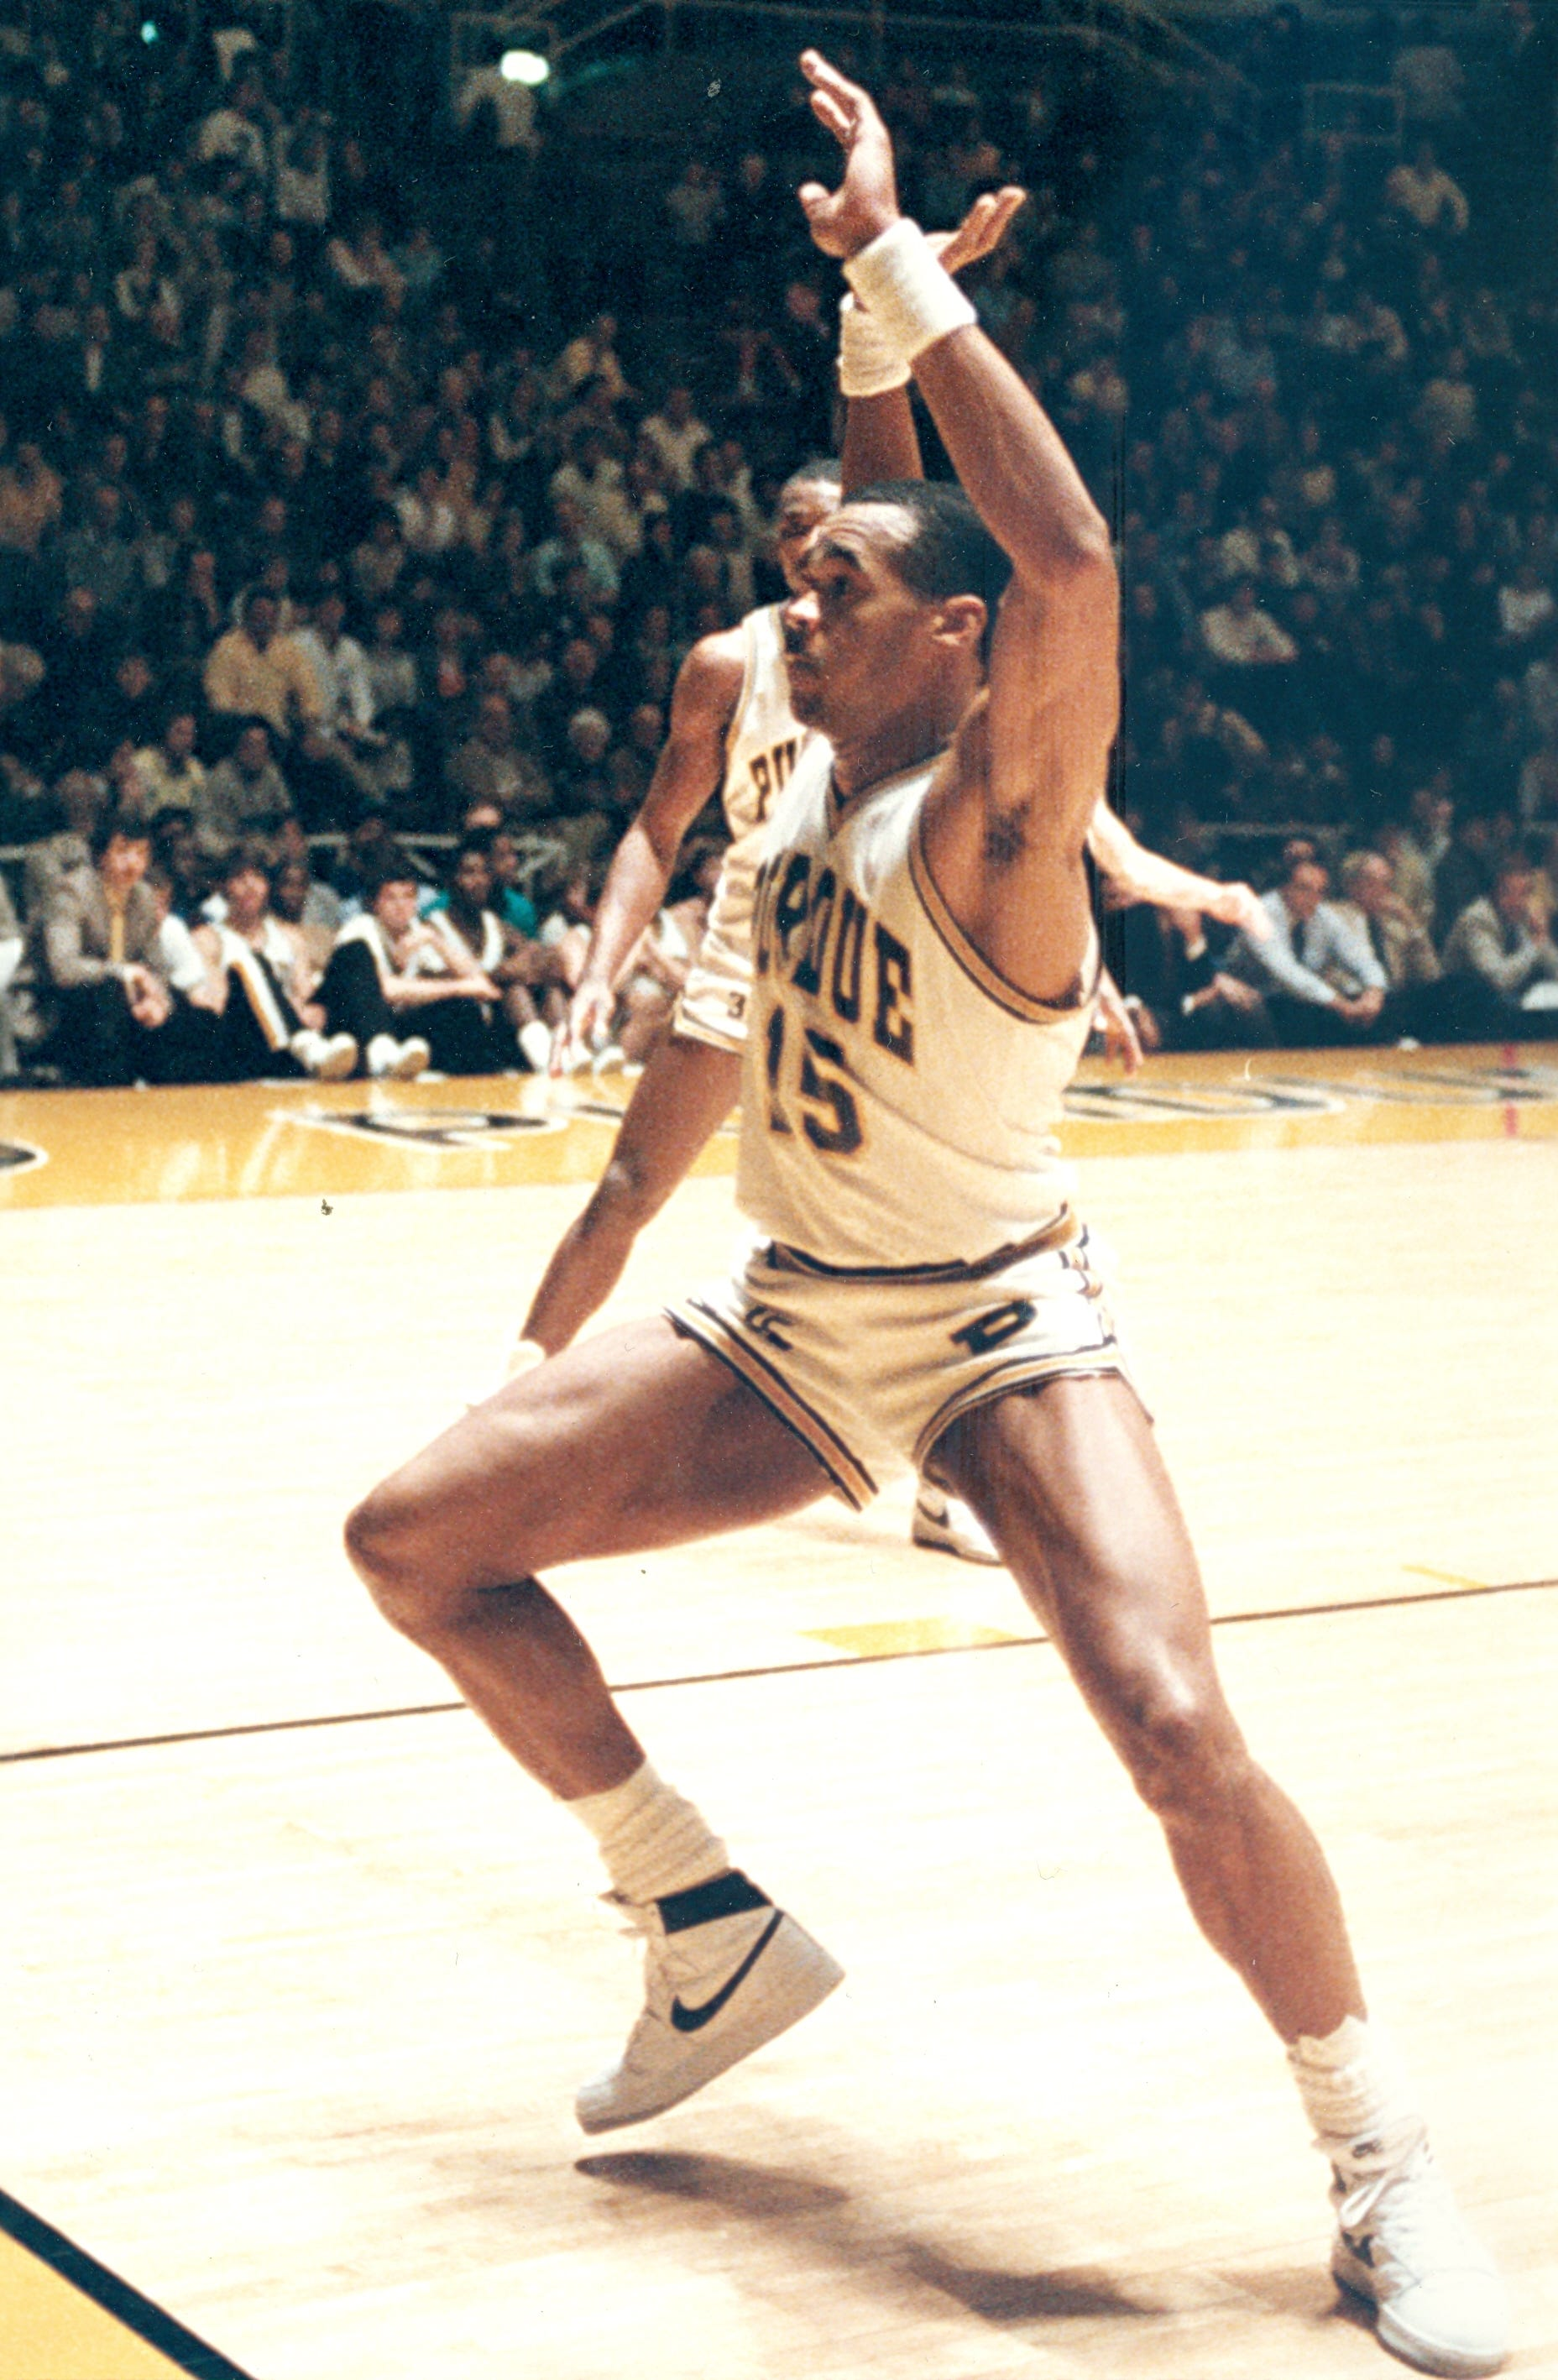 James Bullock led Purdue in scoring and rebounding during his senior season in 1984-85.